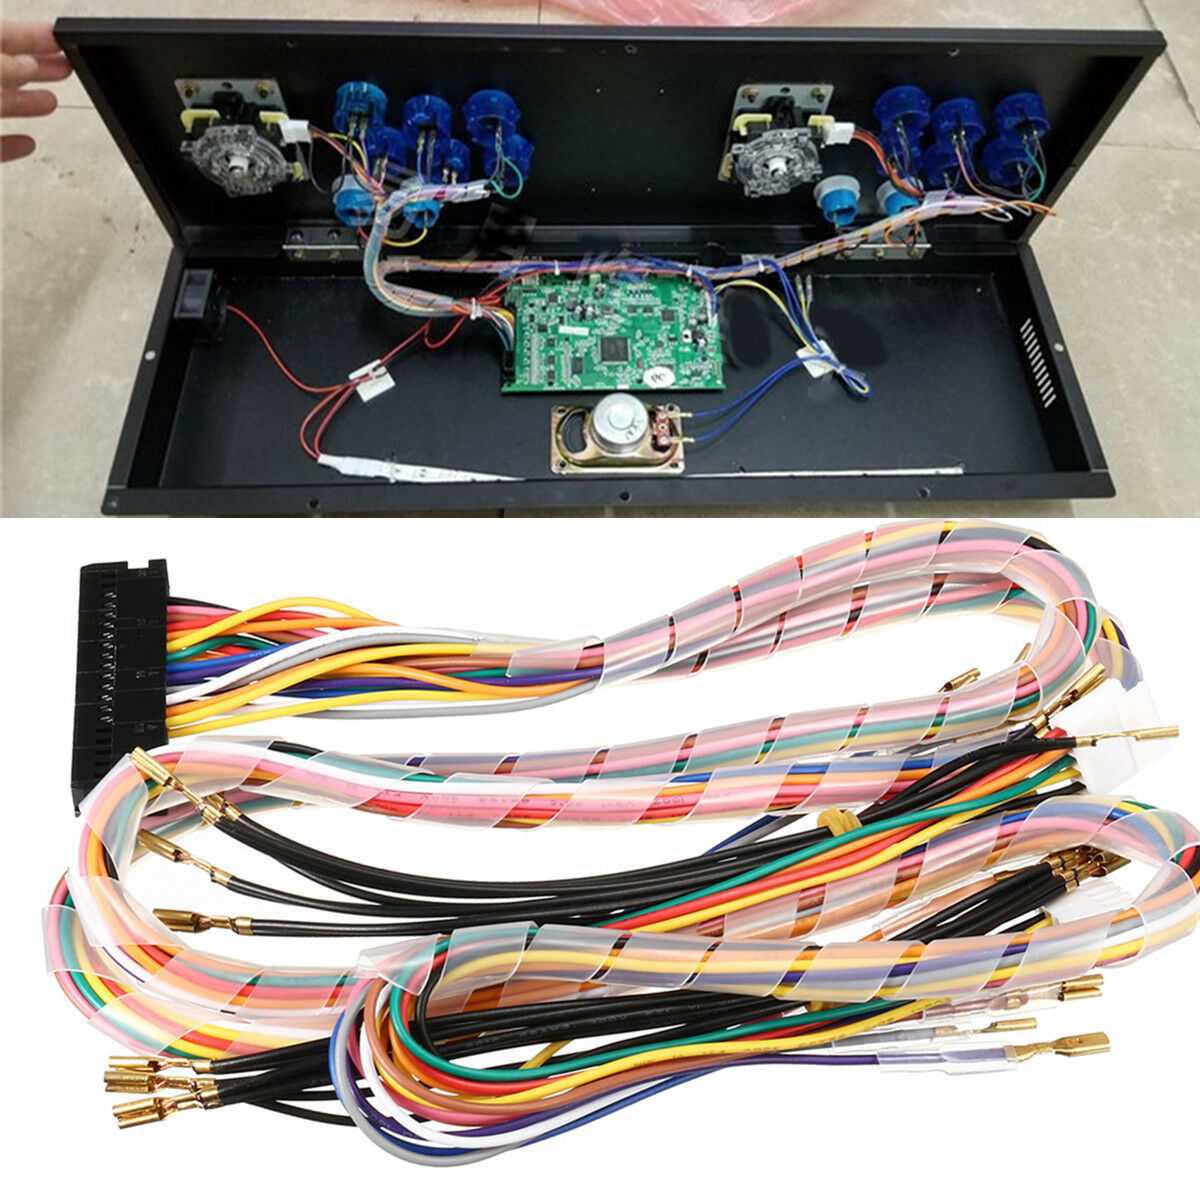 Wiring Harness Cable Replacement Parts Assemble For Arcade Jamma 2 Wire Connector Pcb 1 Of 12only 3 Available